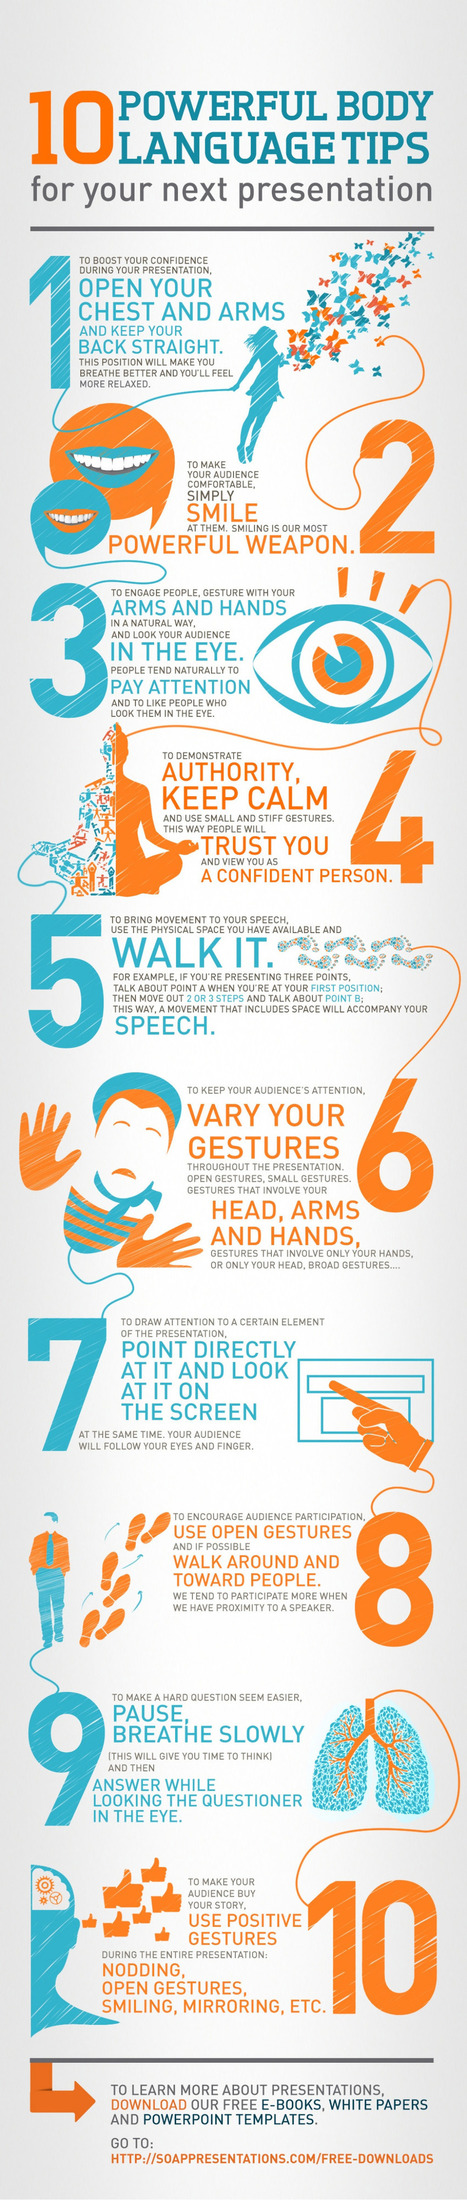 10 Body Language Tips to Help You Command Your Classroom | Era Digital - um olhar ciberantropológico | Scoop.it